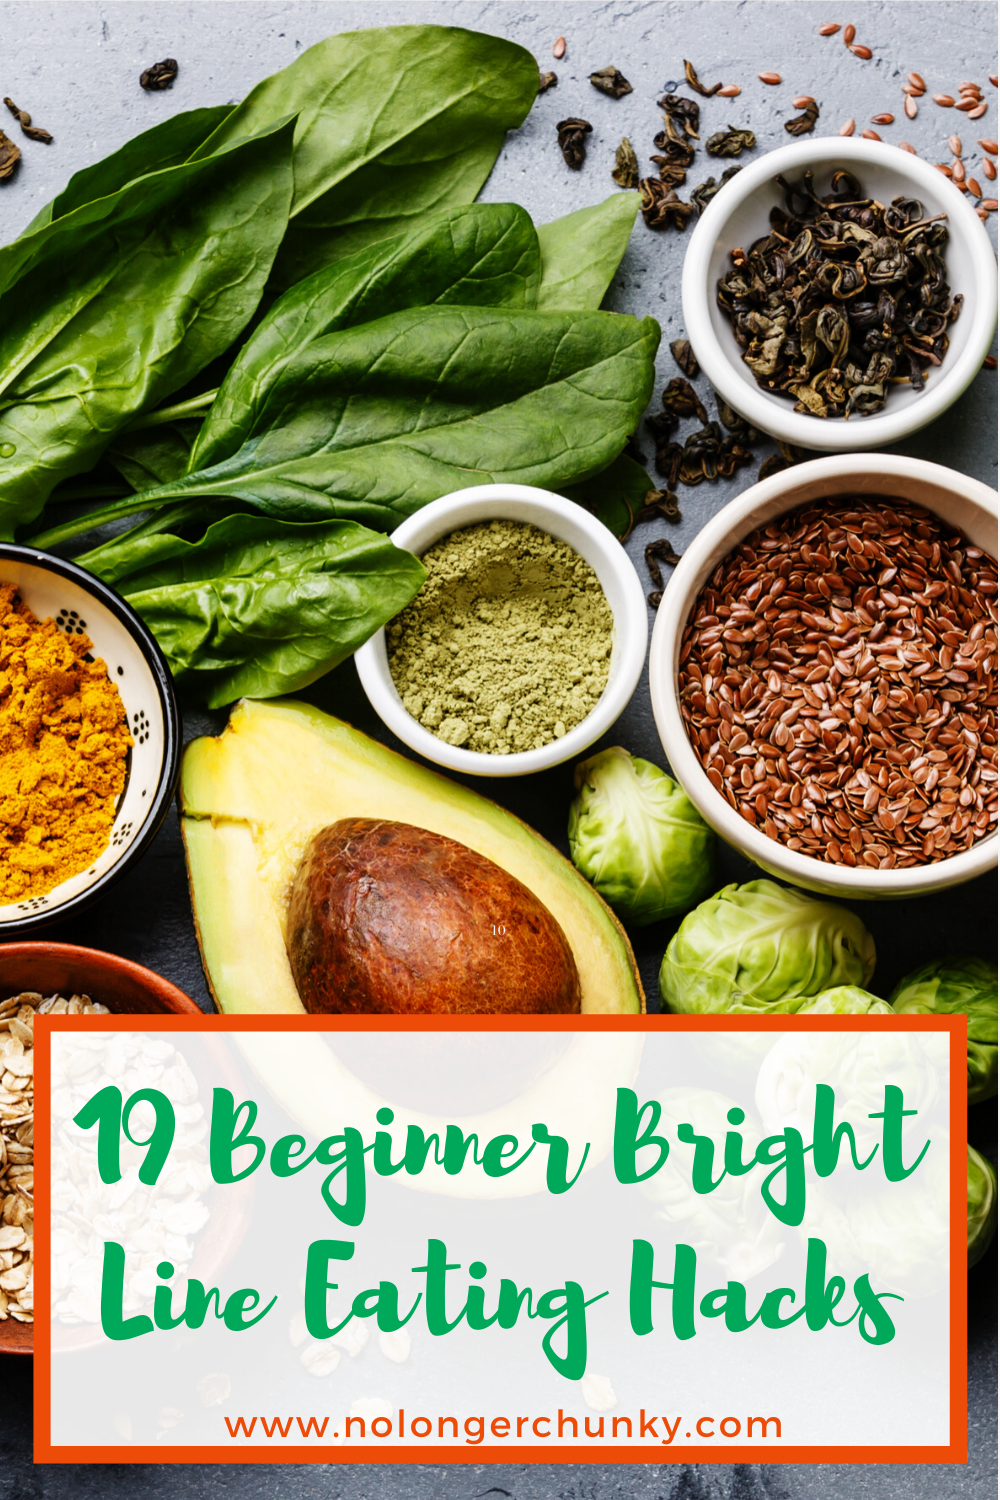 19 Beginner Bright Line Eating Hacks 2